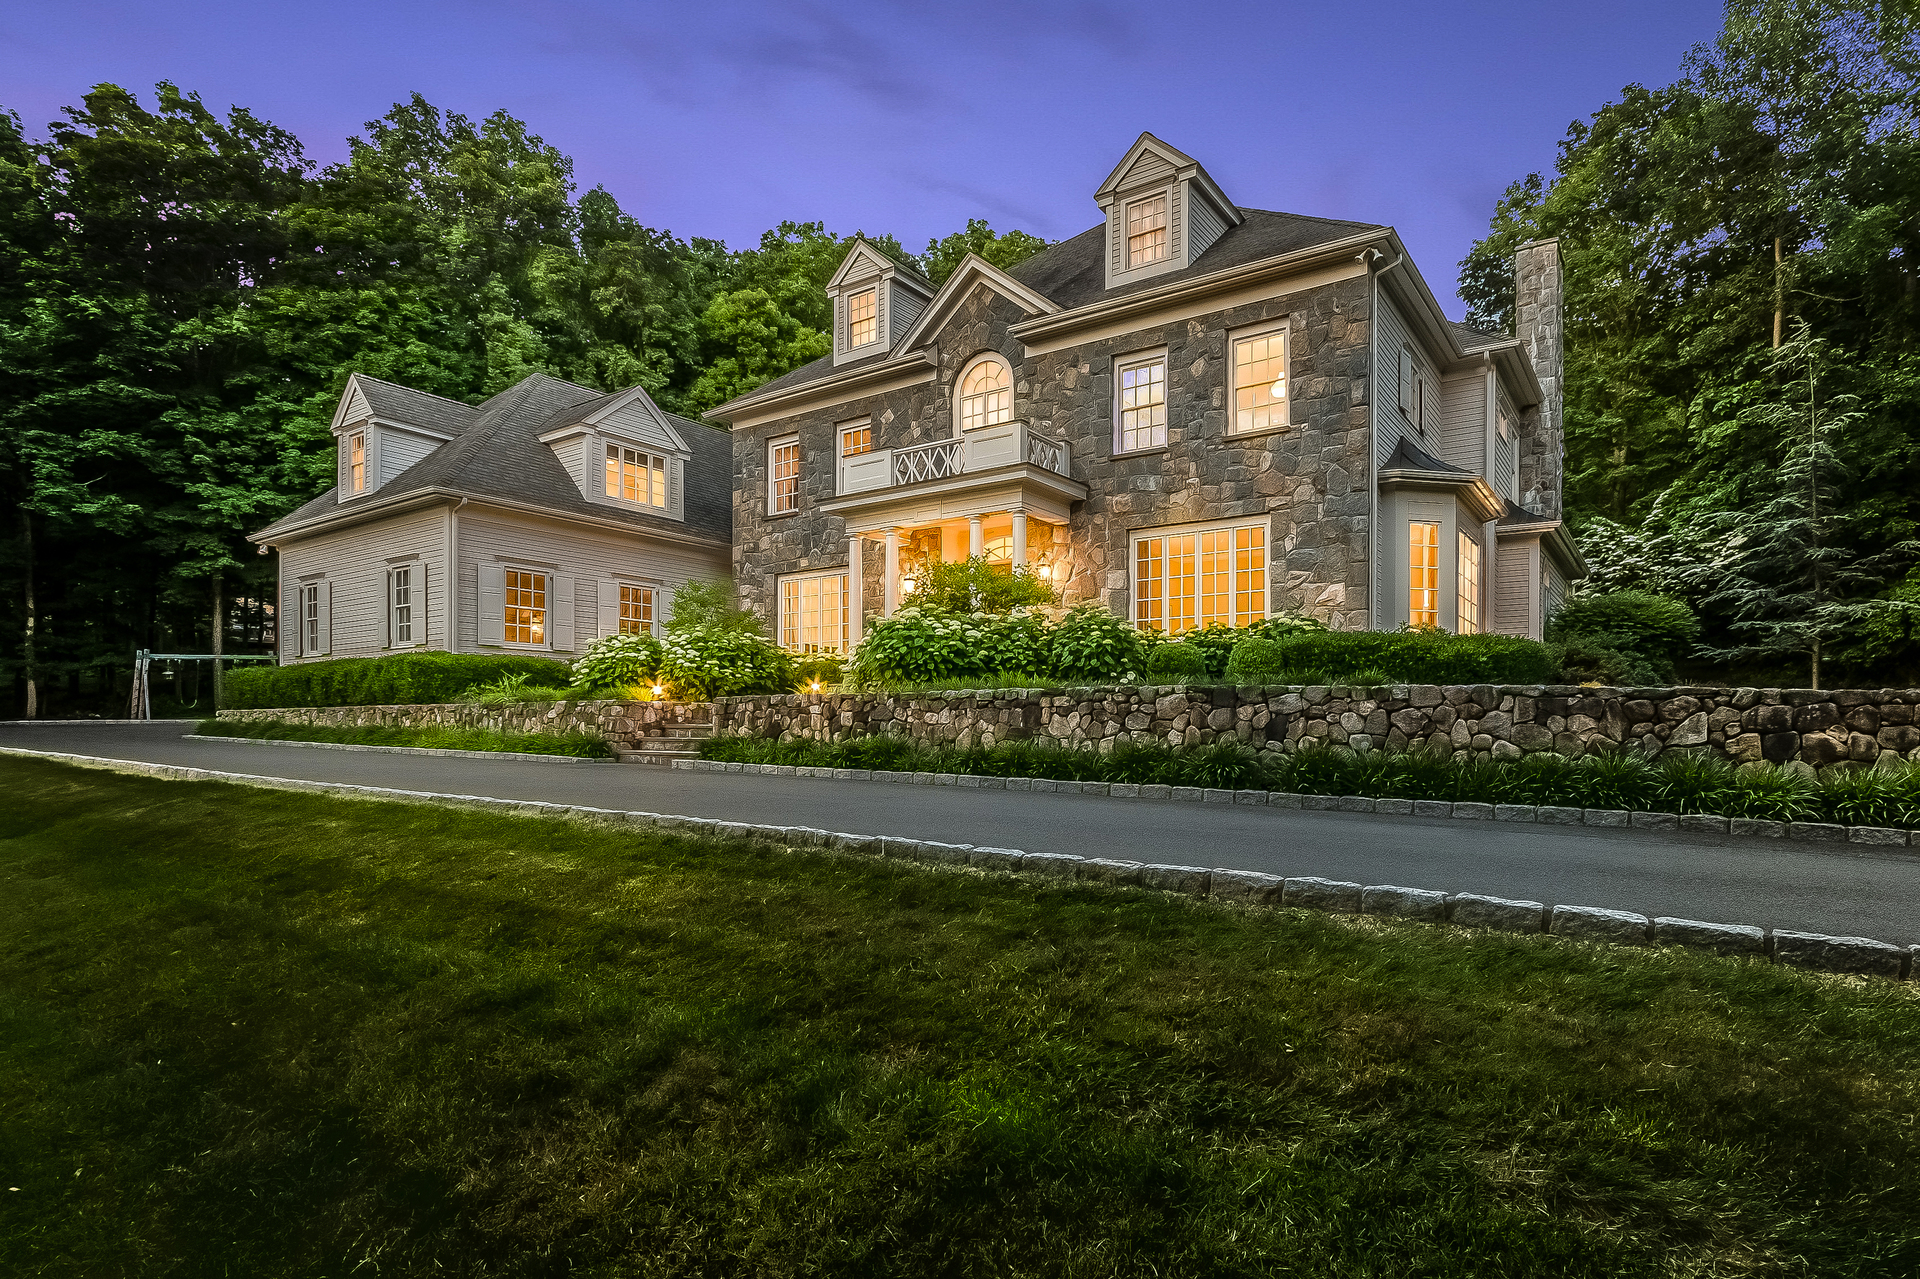 Single Family Home for Sale at Sophisticated, Private and Serene 28 Pheasant Hill Road Weston, Connecticut 06883 United States